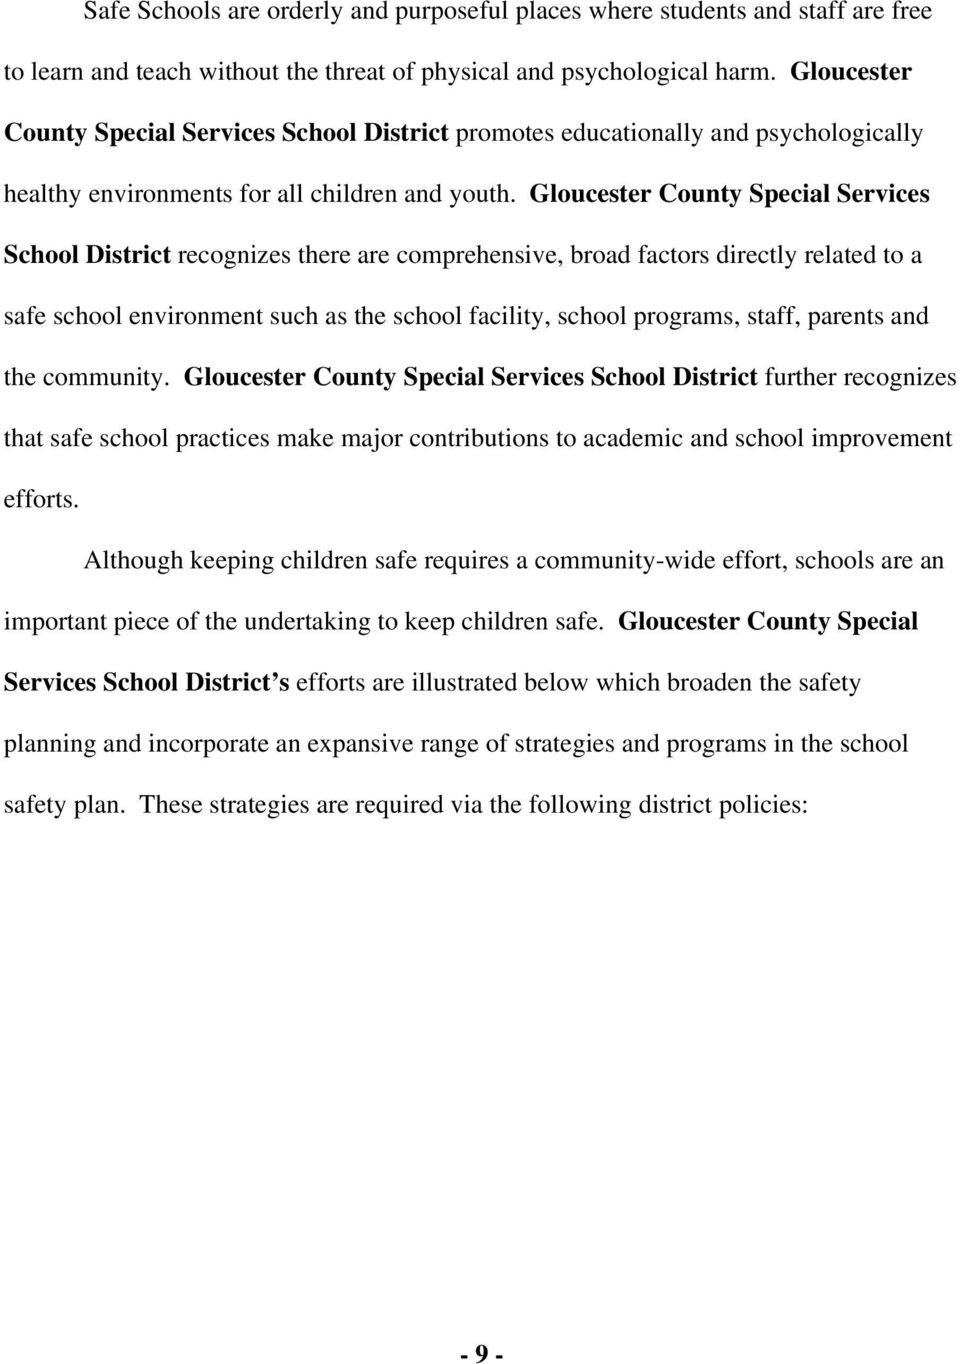 Gloucester County Special Services School District recognizes there are comprehensive, broad factors directly related to a safe school environment such as the school facility, school programs, staff,